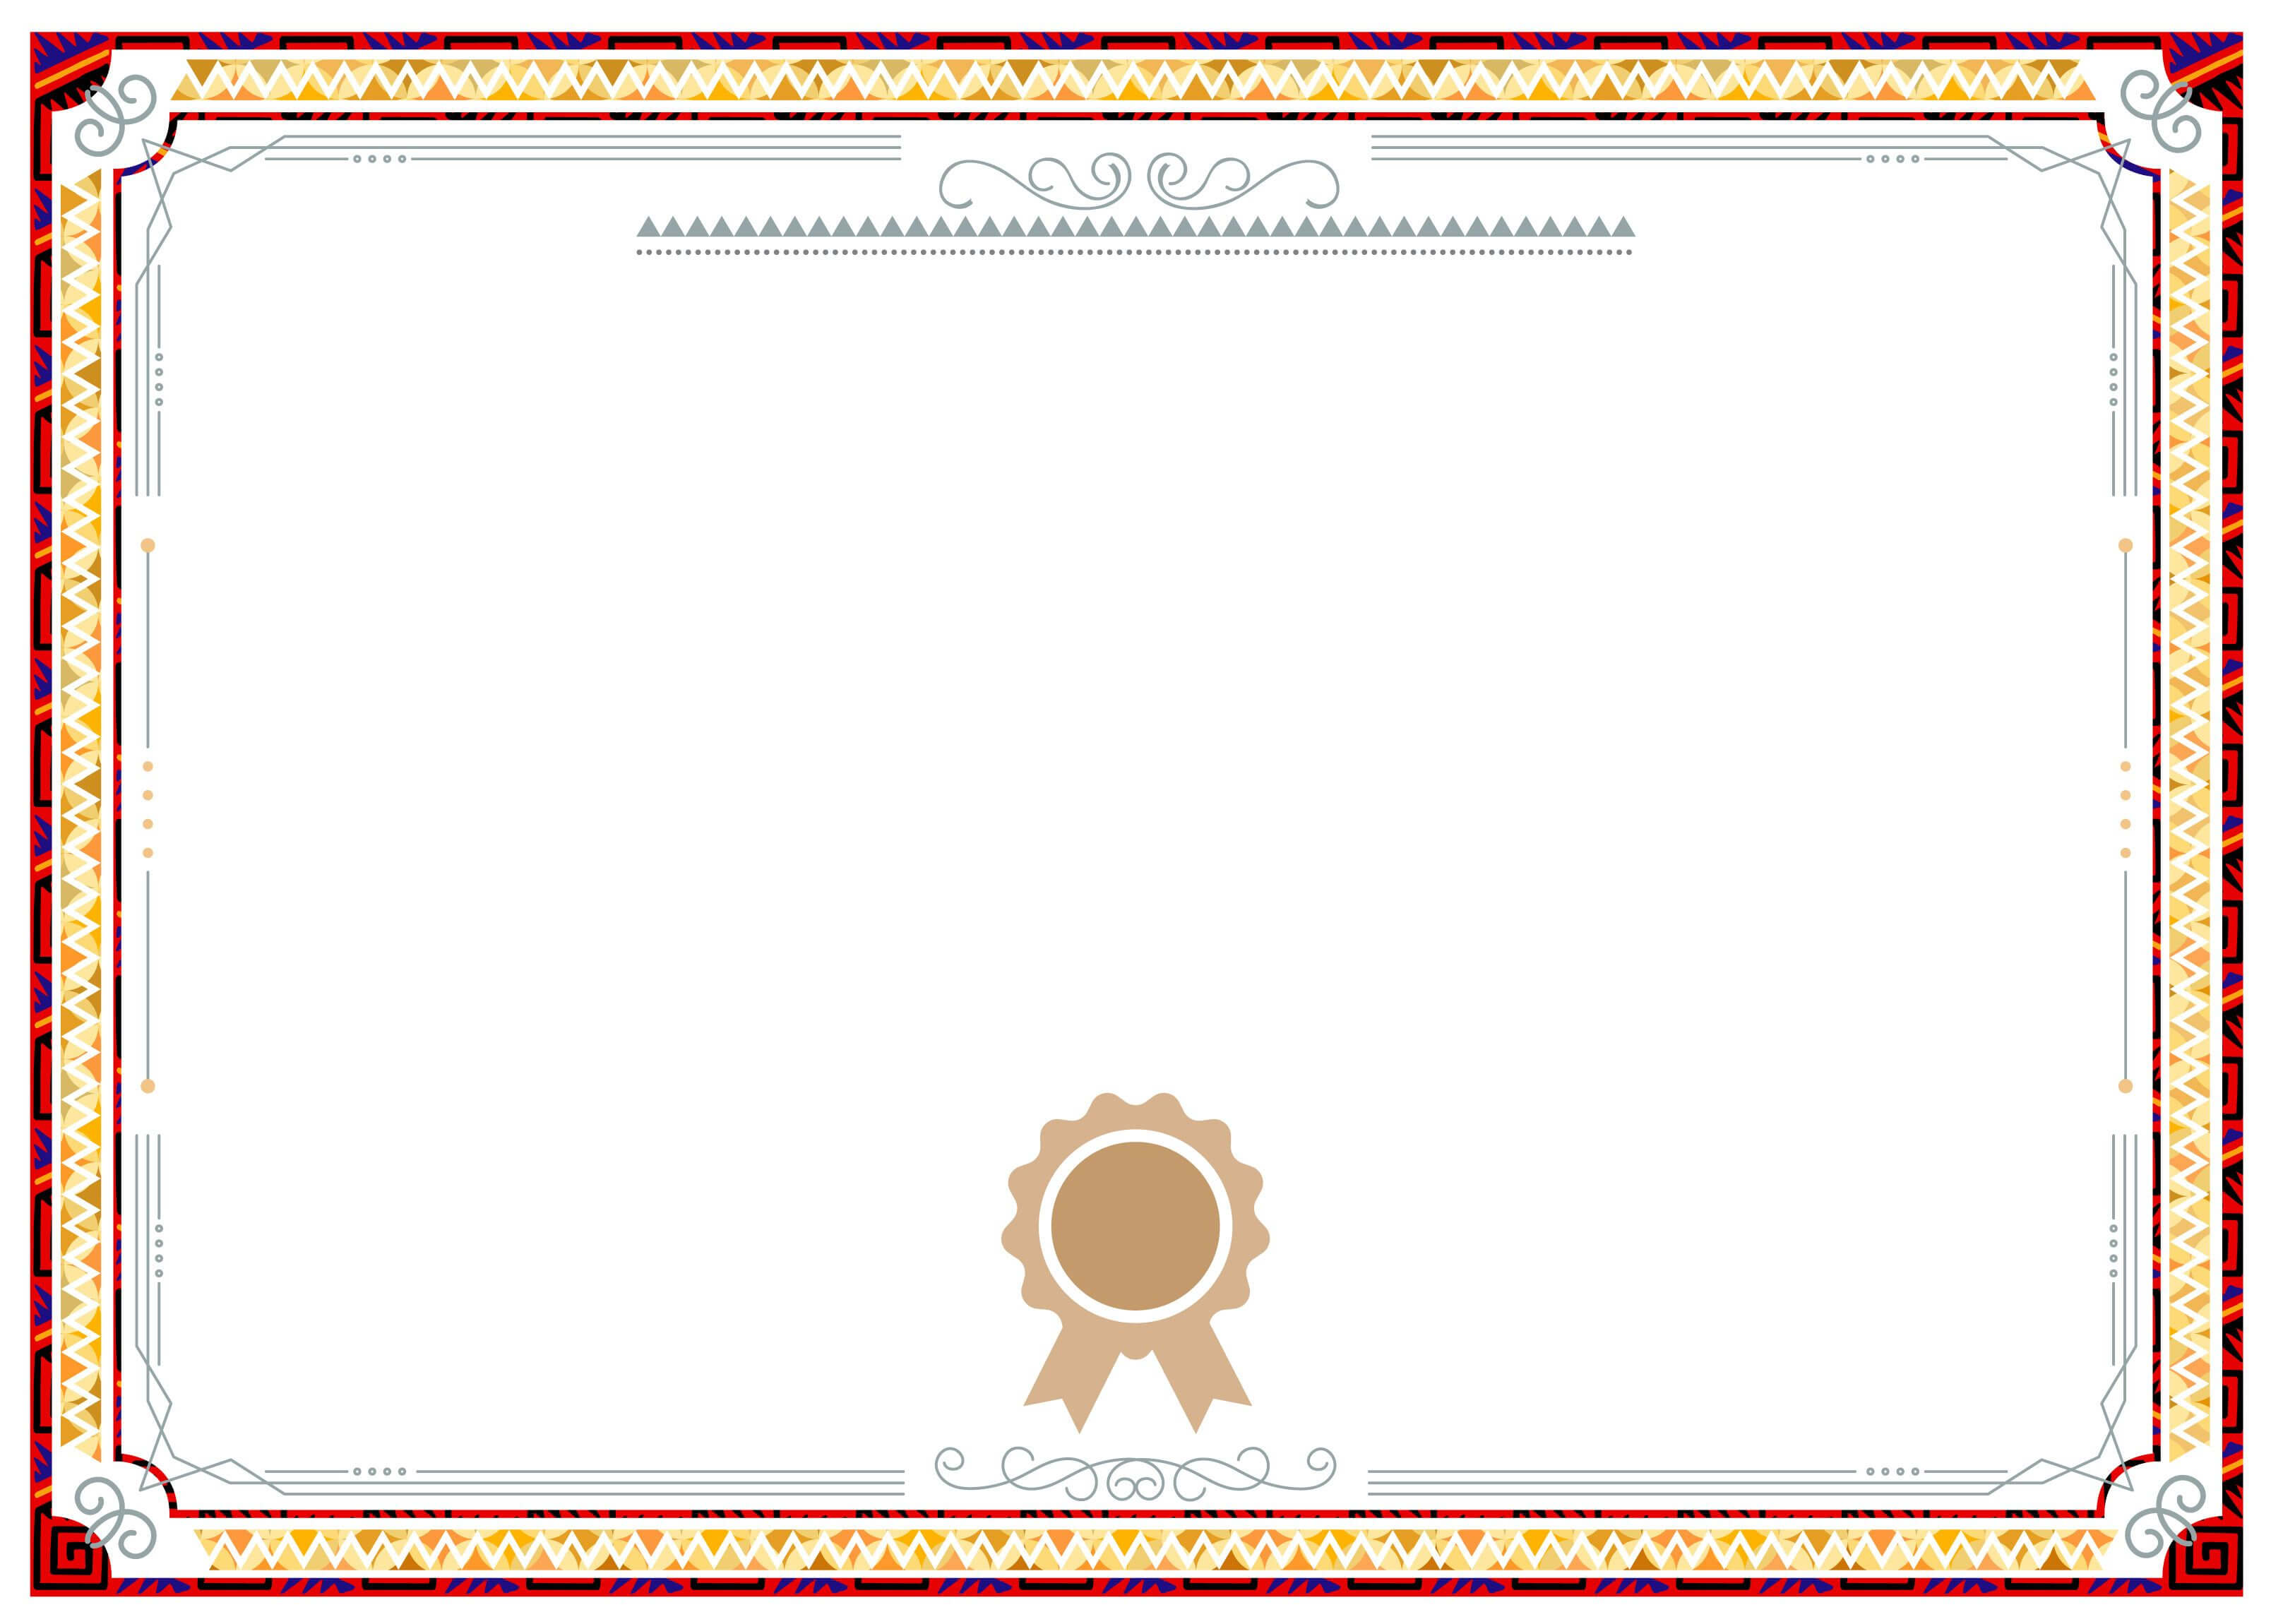 Red Background Shading Pattern Border Certificate Design Within Certificate Border Design Templates